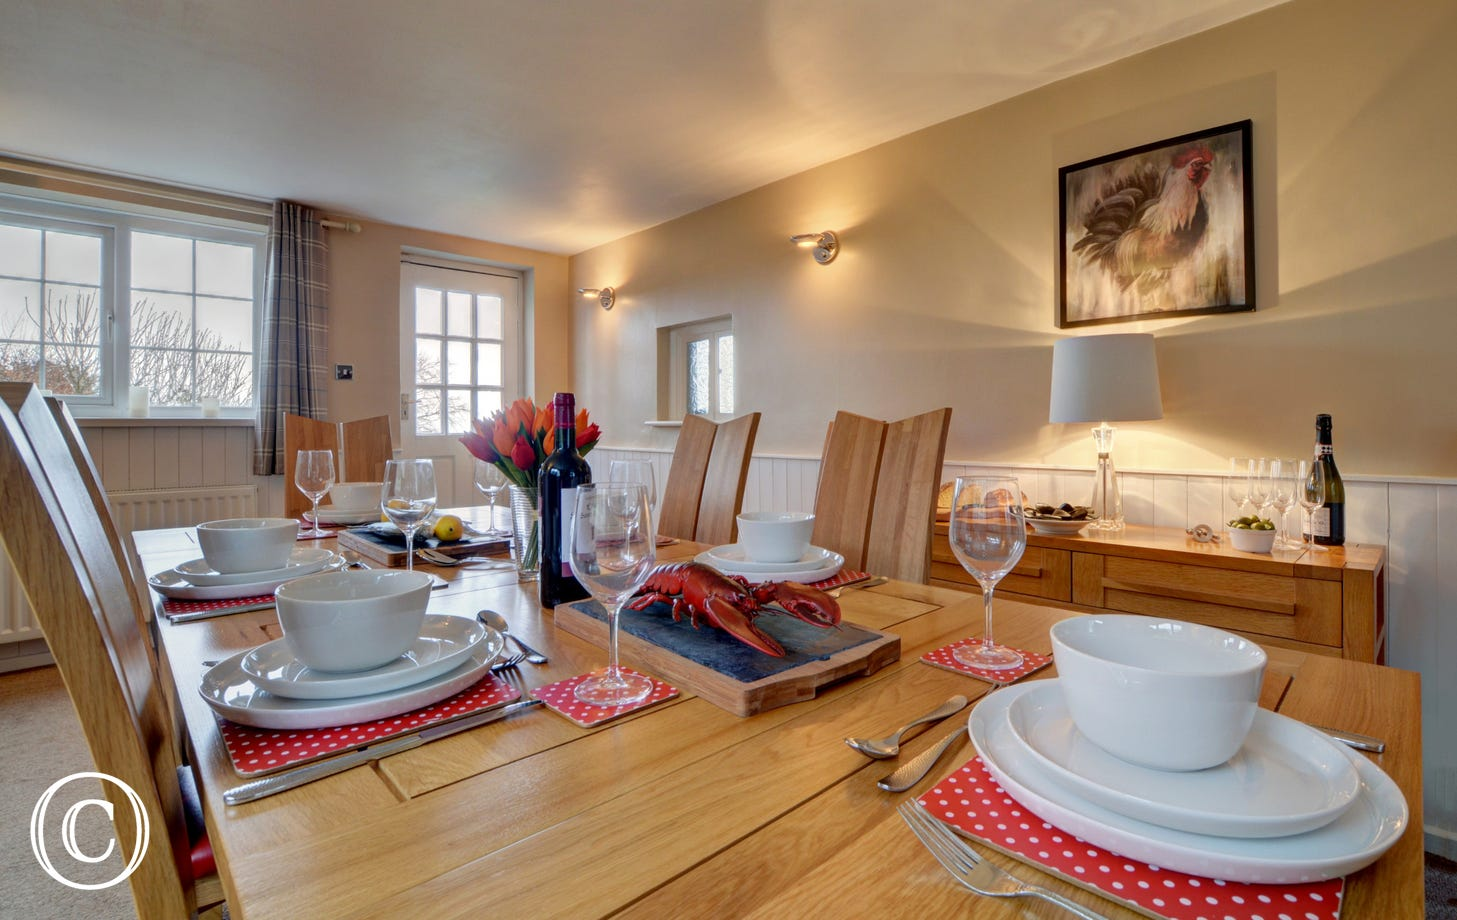 The spacious and stylish dining room is a wonderful space to get together with family and friends and is adjacent to a very well equipped kitchen